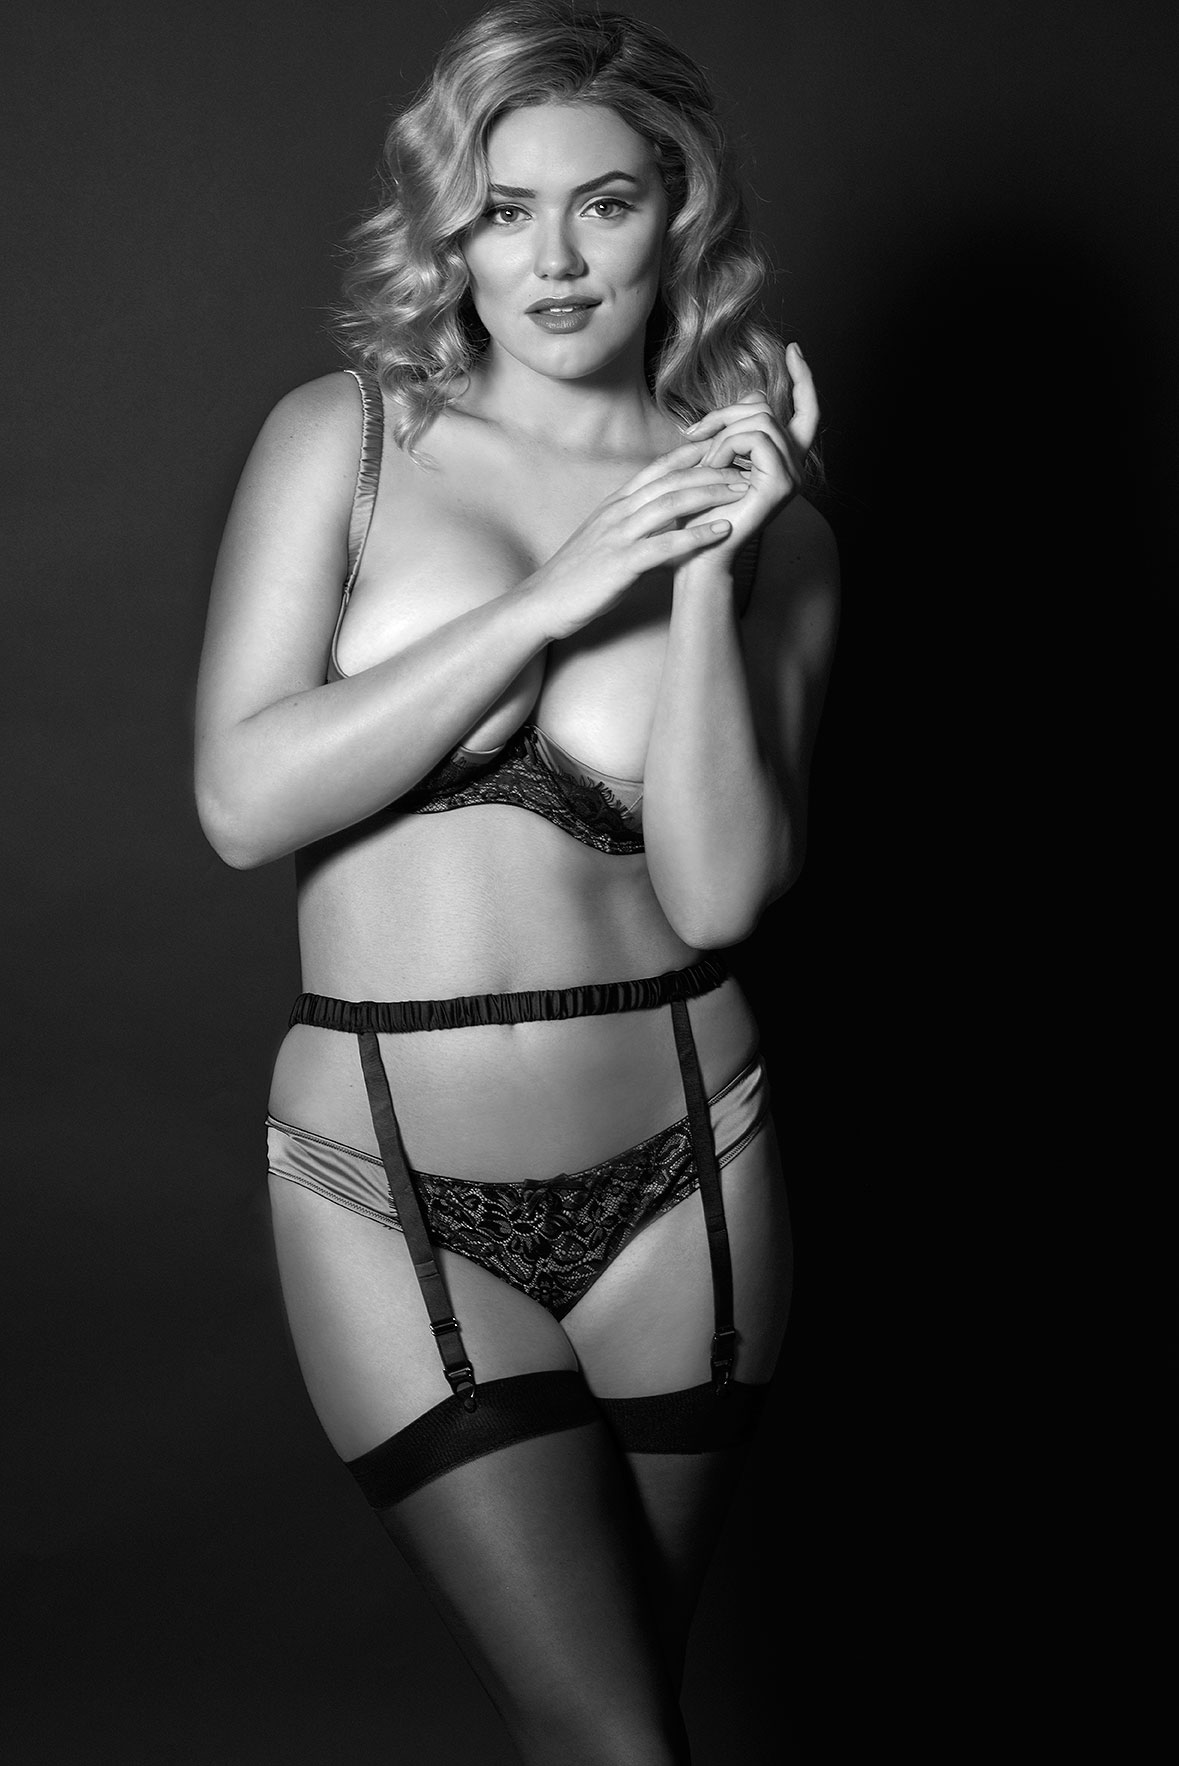 Lingerie-la-femme-larger-cup-lingerie-plus-size-model-kate-m-milk-models-playful-promises-02